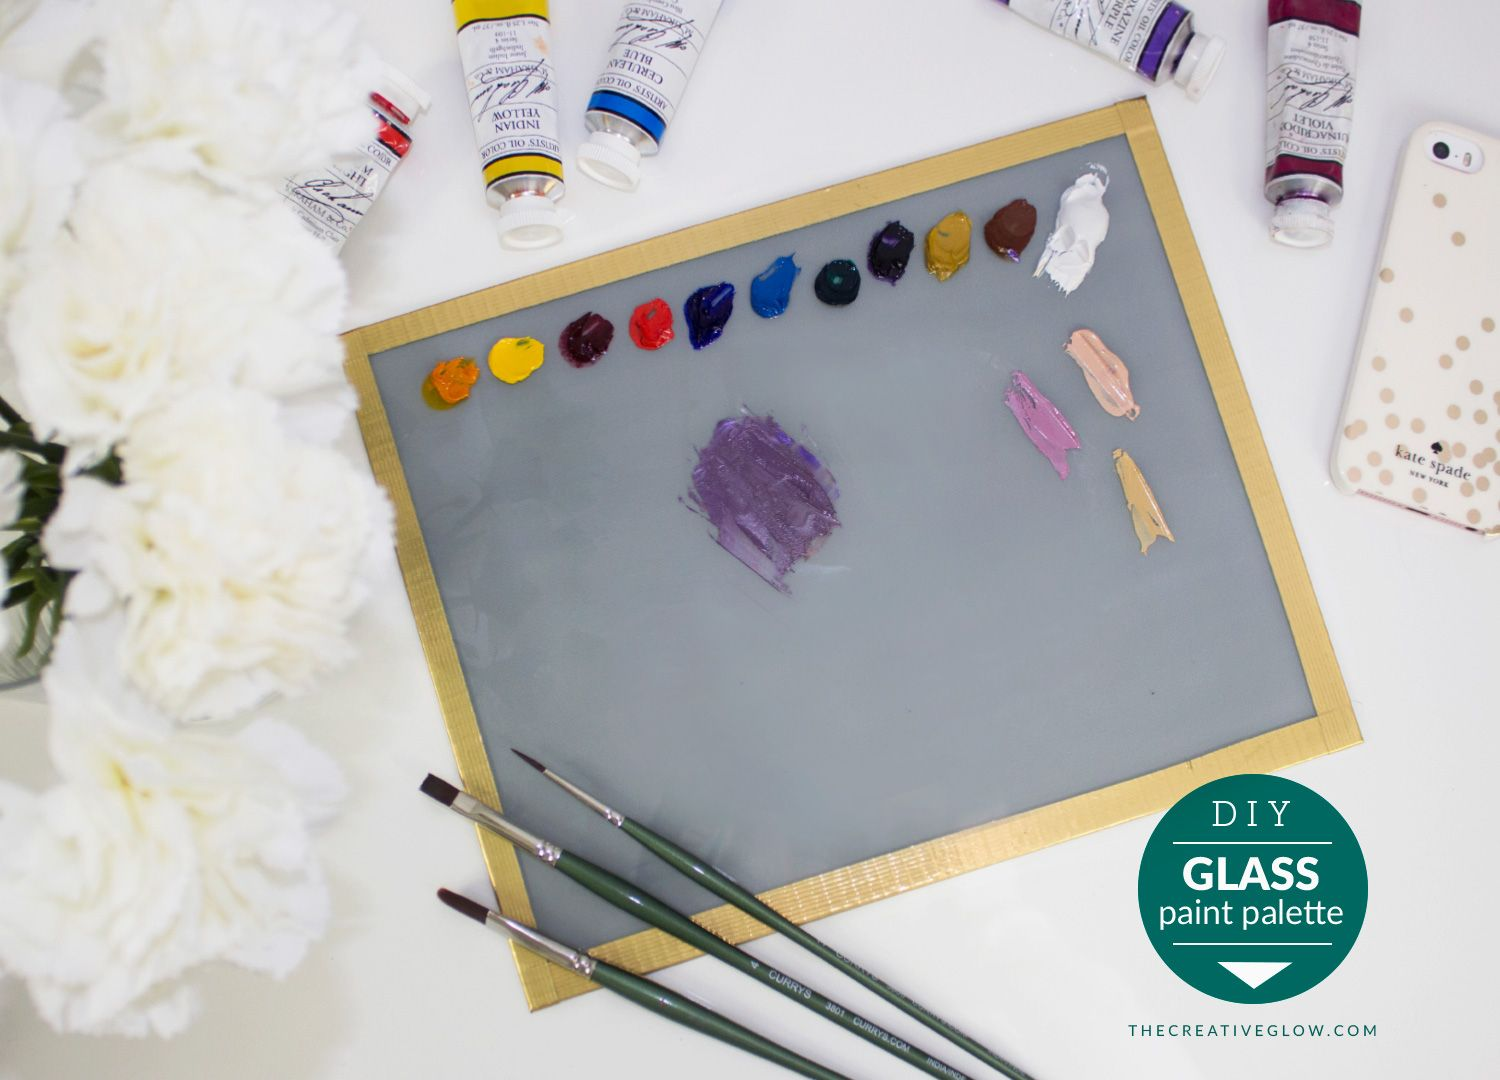 Diy Glass Paint Palette Cheap Easy As Heck The Creative Glow